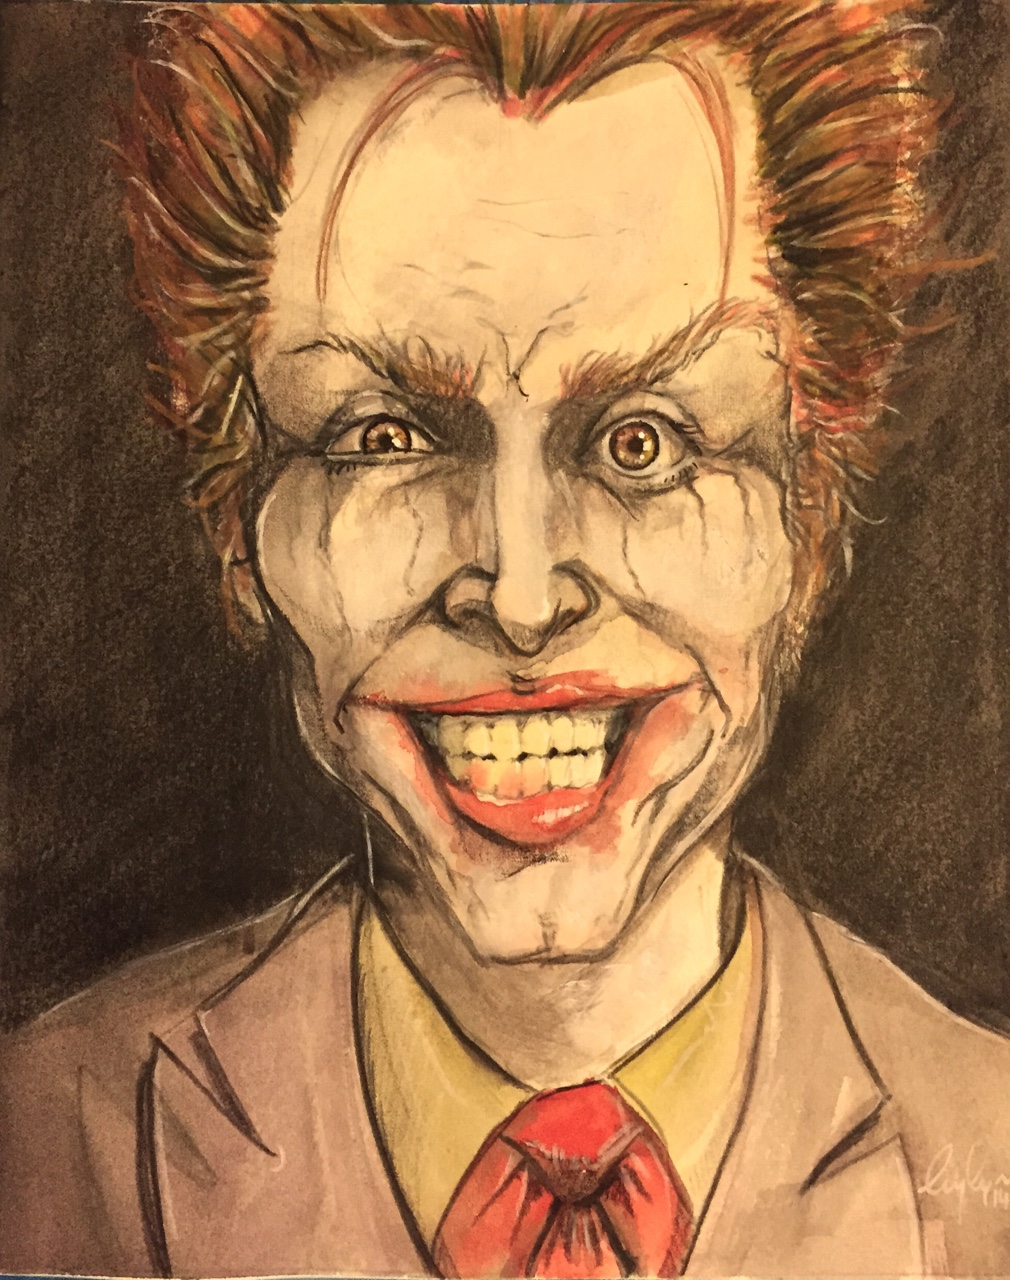 107089570591 - corey wyer i did this painting of the joker.jpg